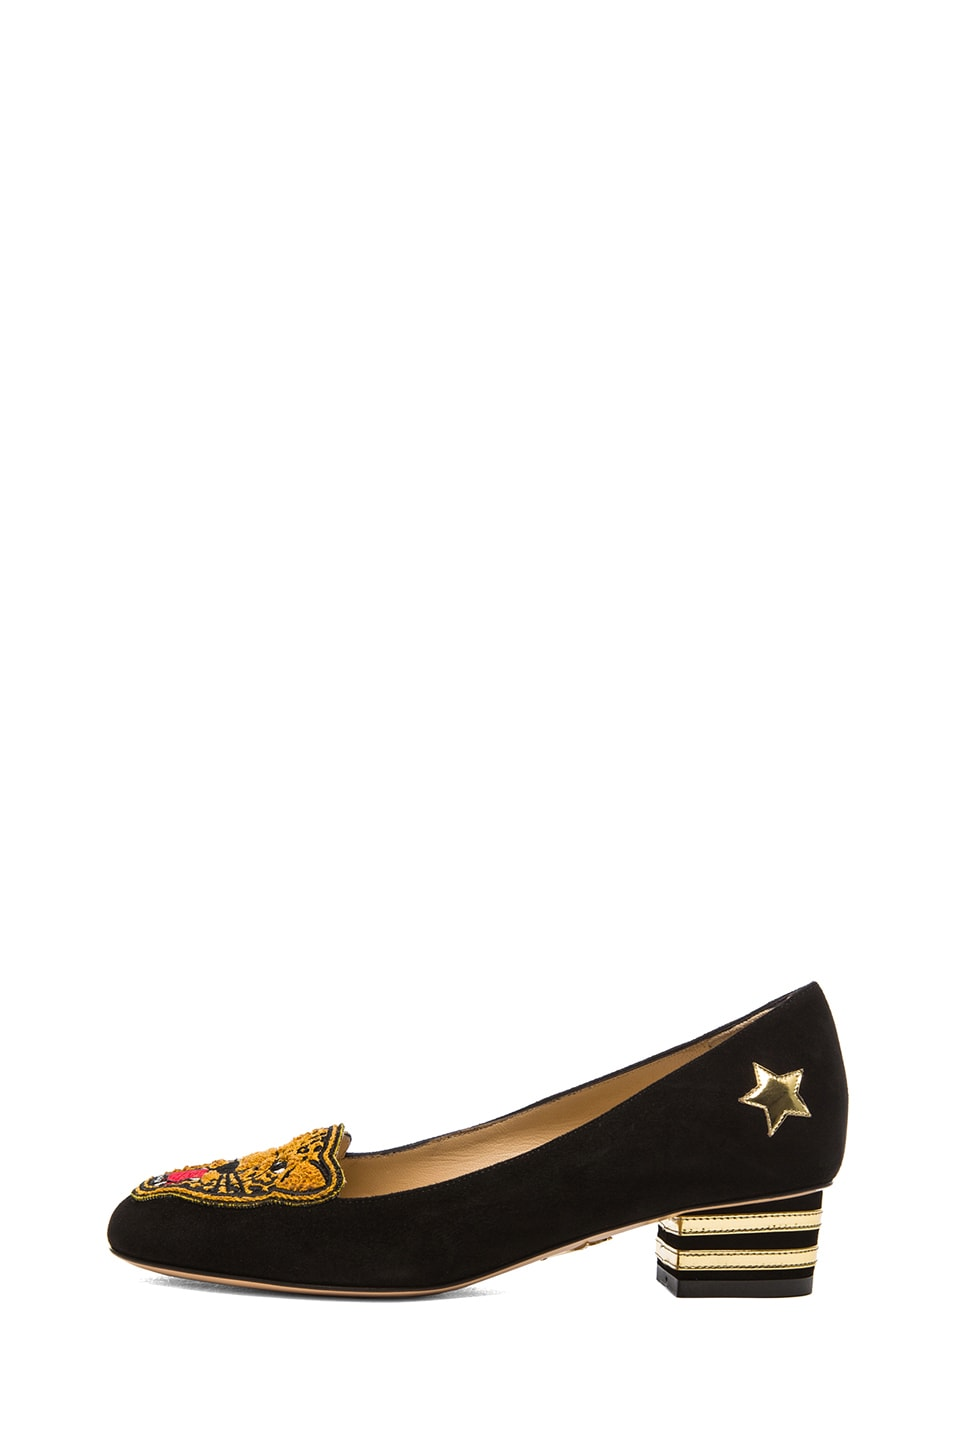 Image 1 of Charlotte Olympia Mascot Suede Heeled Flats in Black